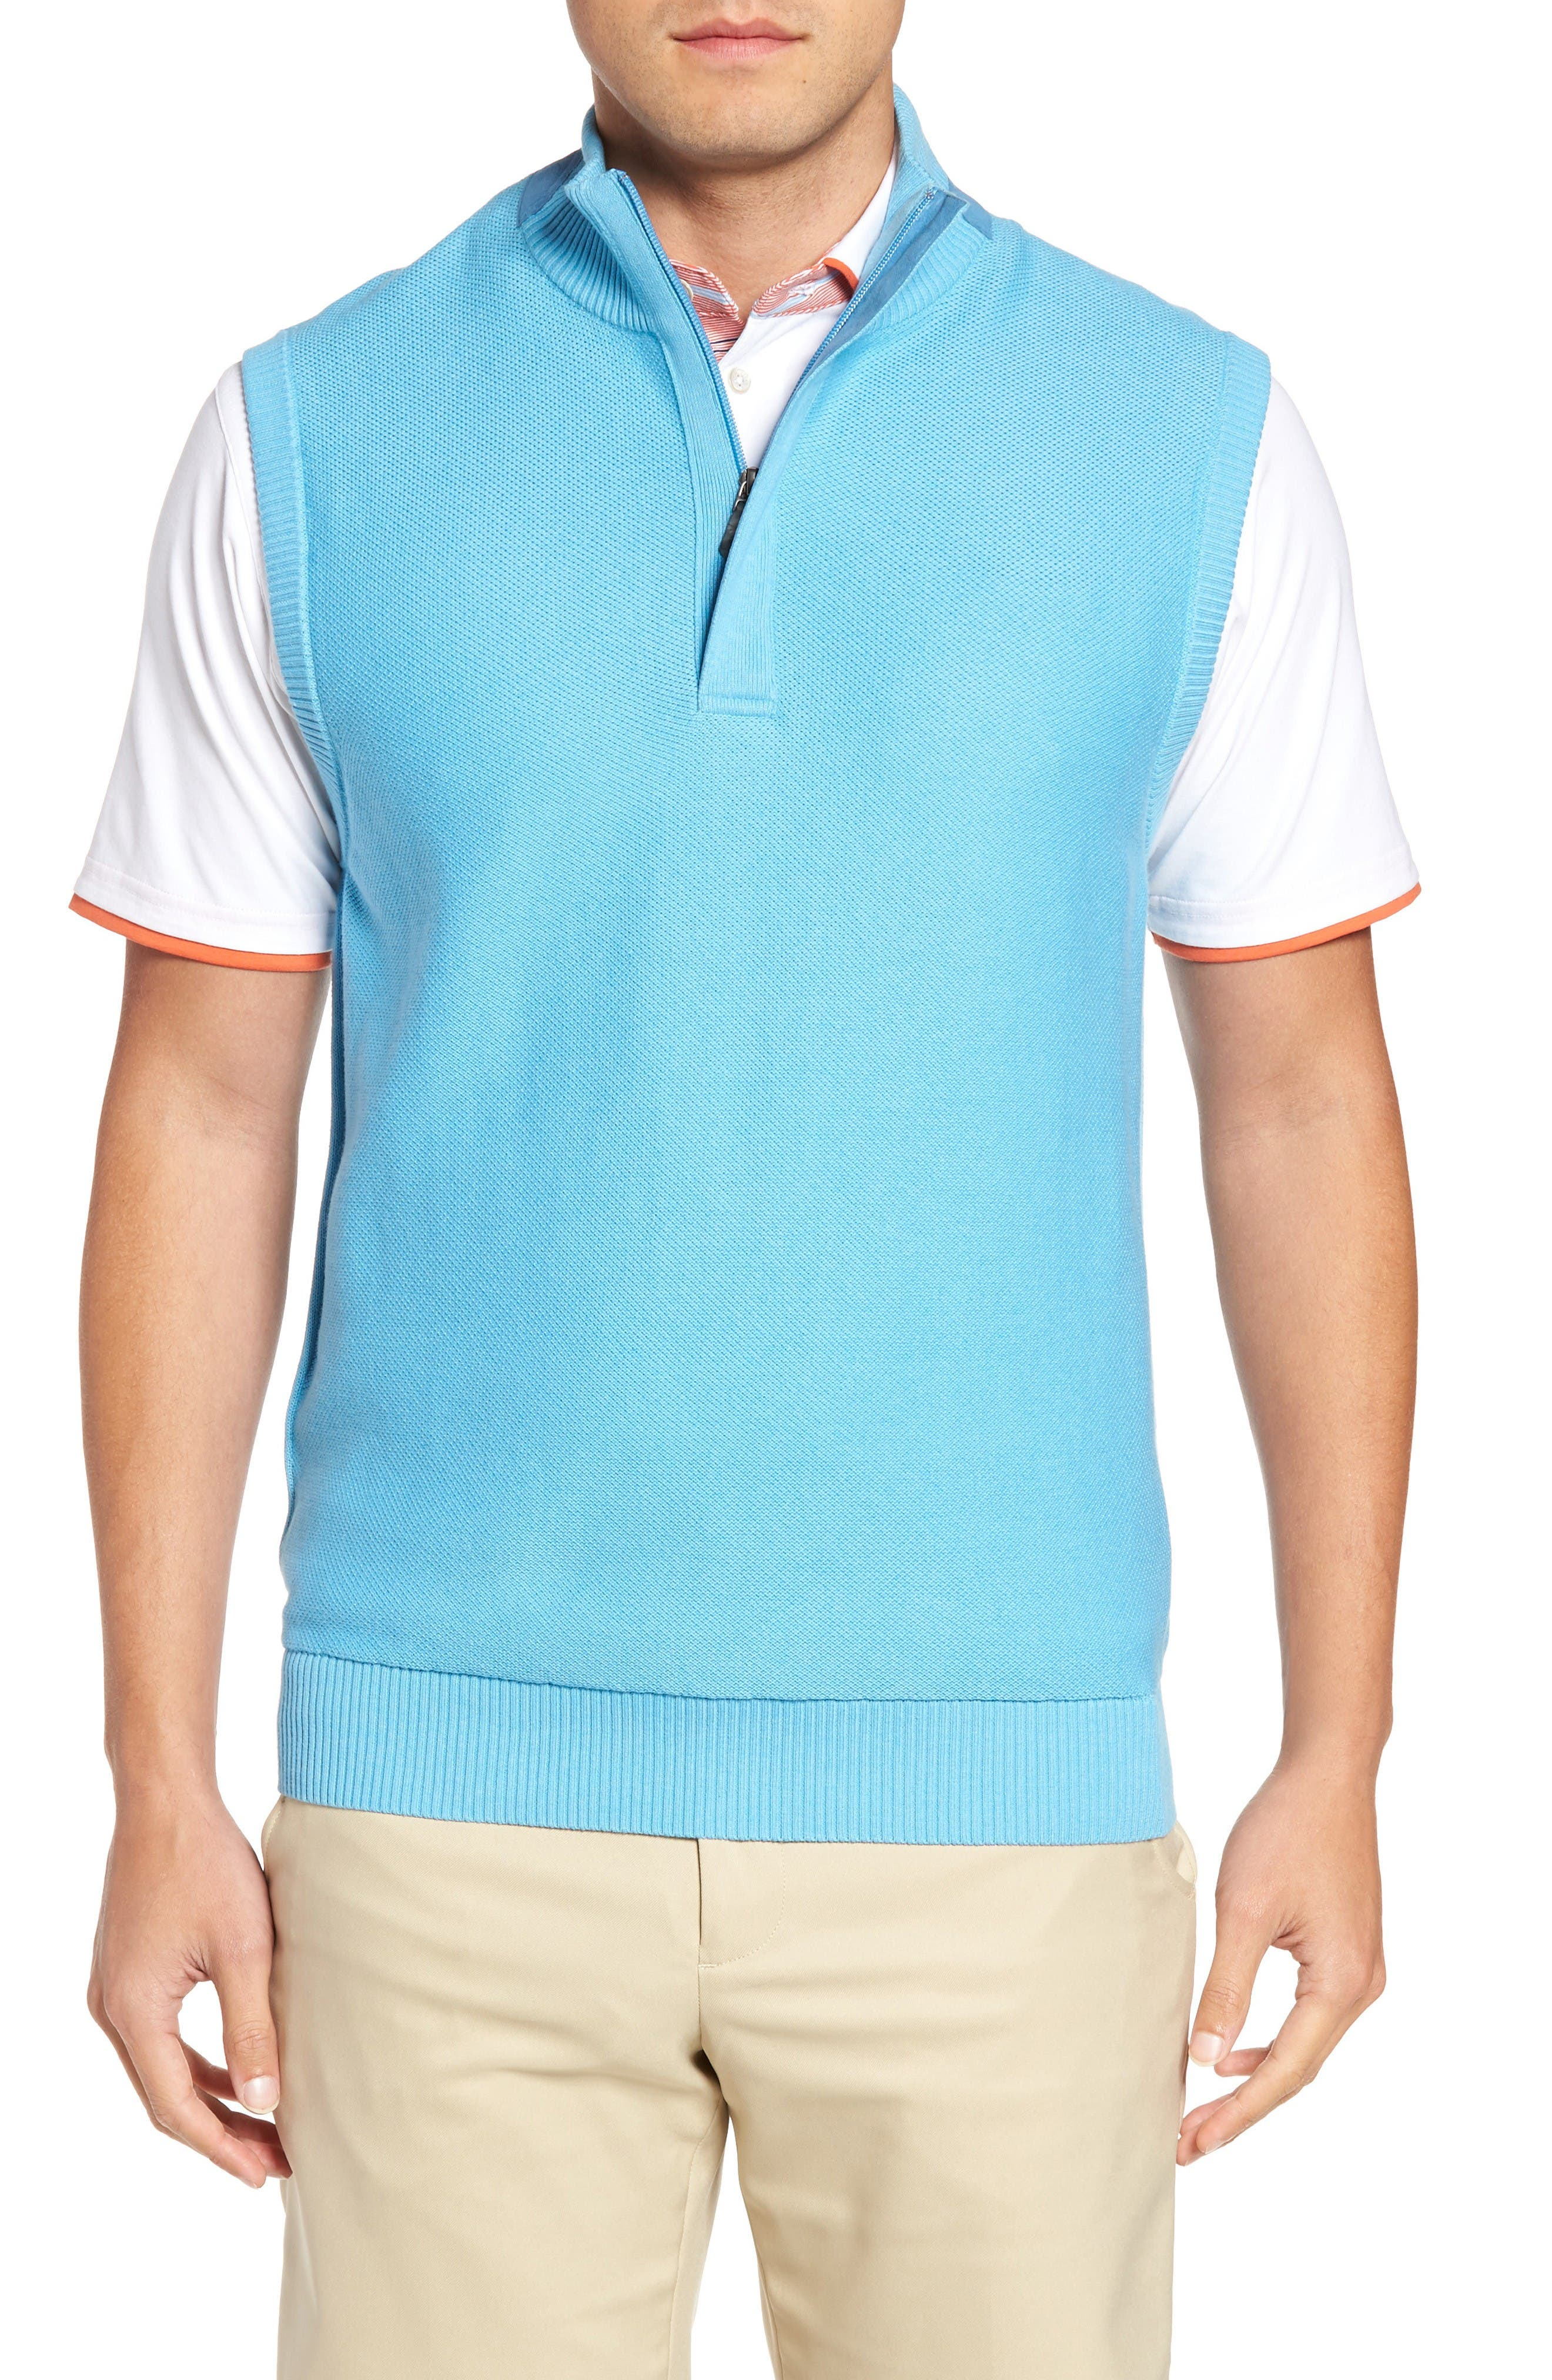 Main Image - Bobby Jones Piqué Jersey Quarter Zip Golf Vest